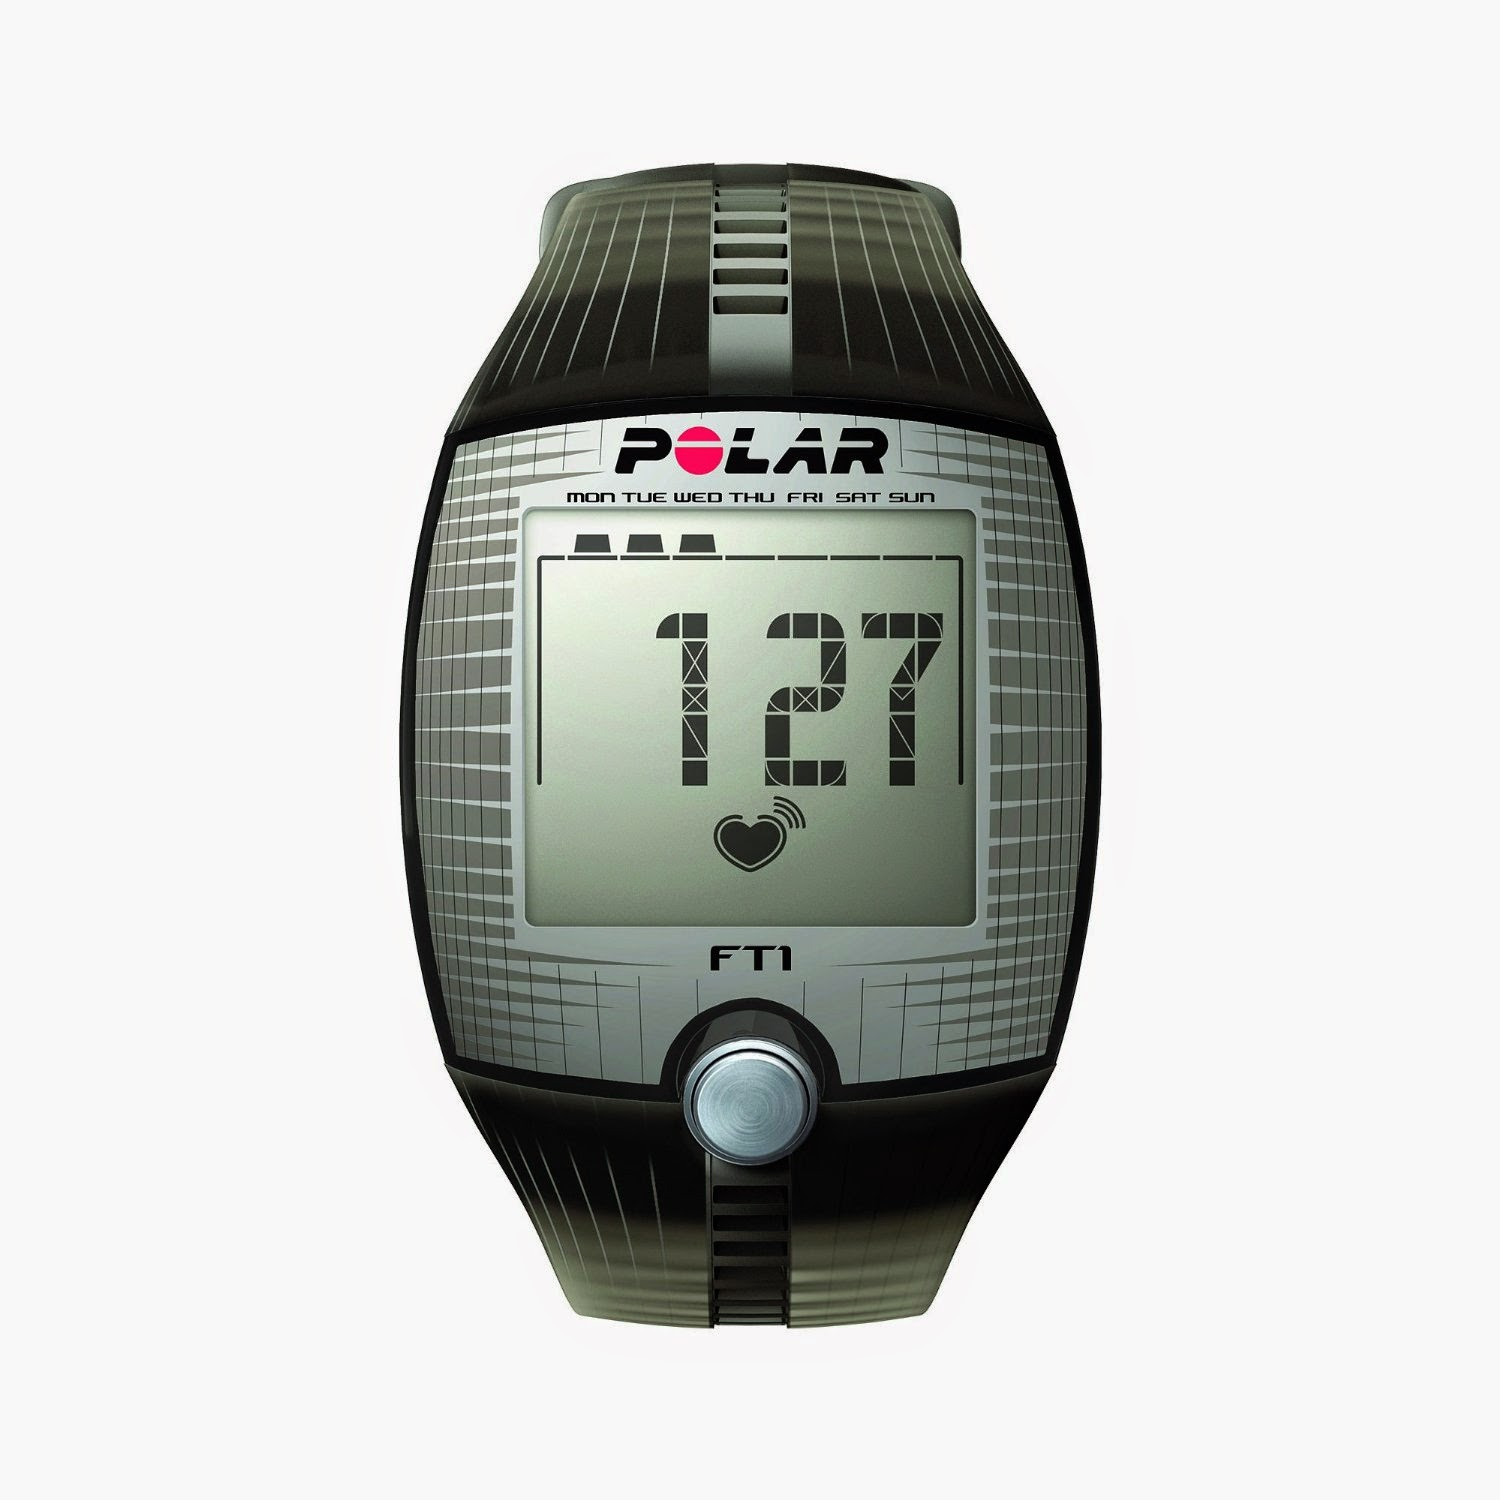 Amazon: Buy Polar FT1 Heart Rate Monitor at Rs.3280